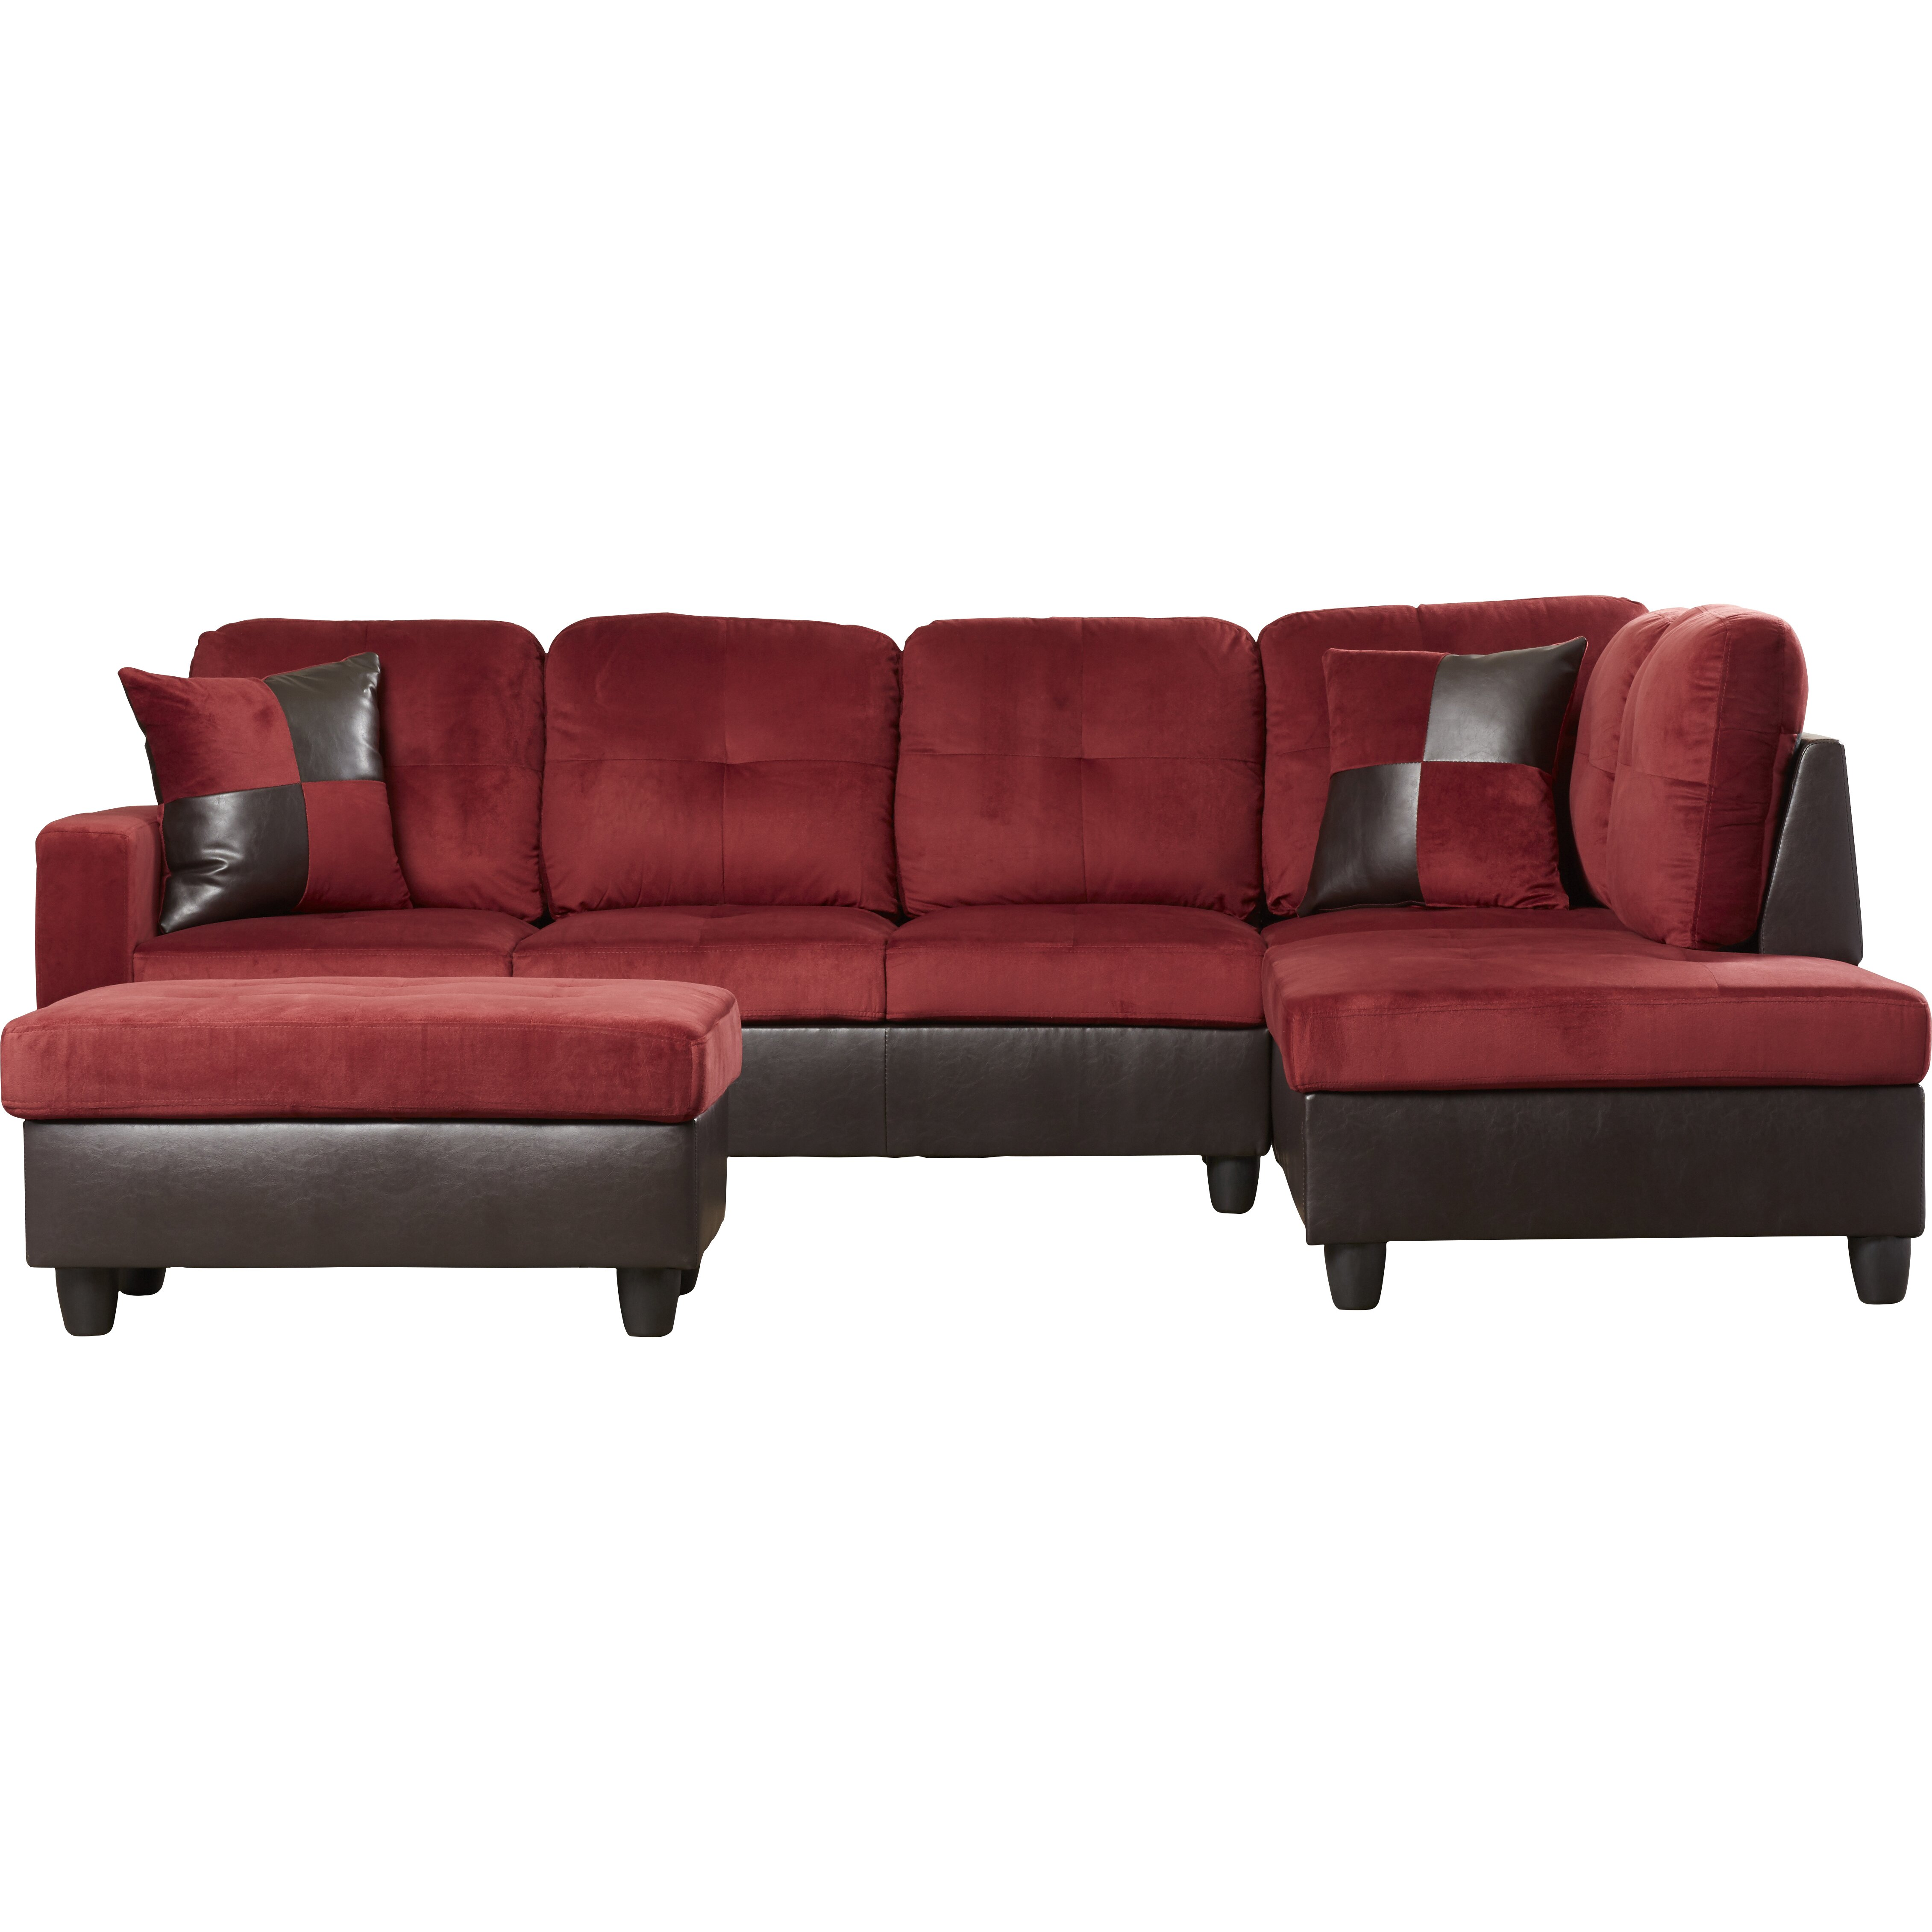 Russ Left Chaise Sectional With Storage Ottoman Wayfair